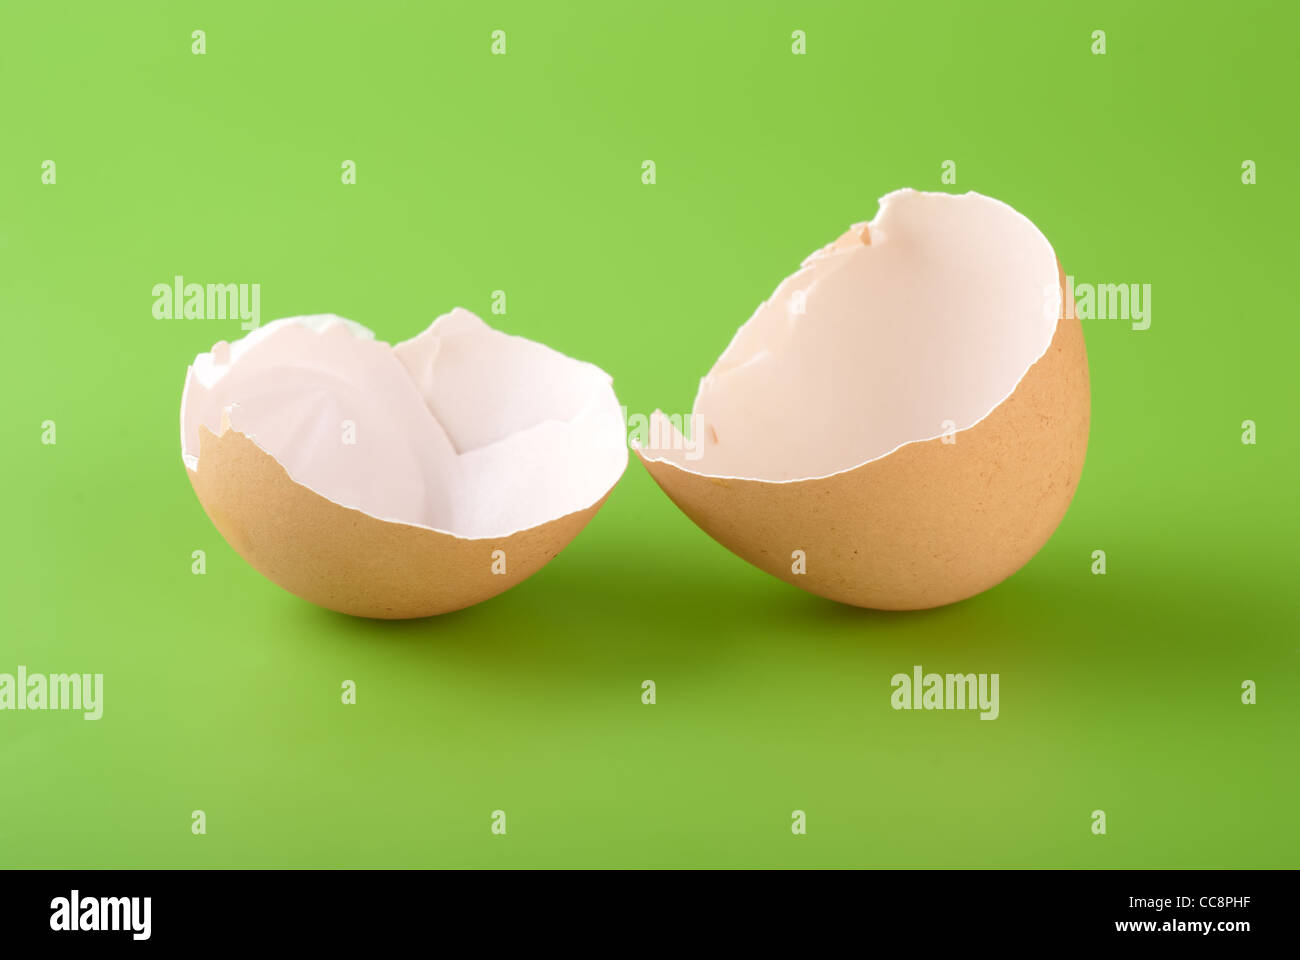 Two pieces of brown egg shell on a green background - Stock Image